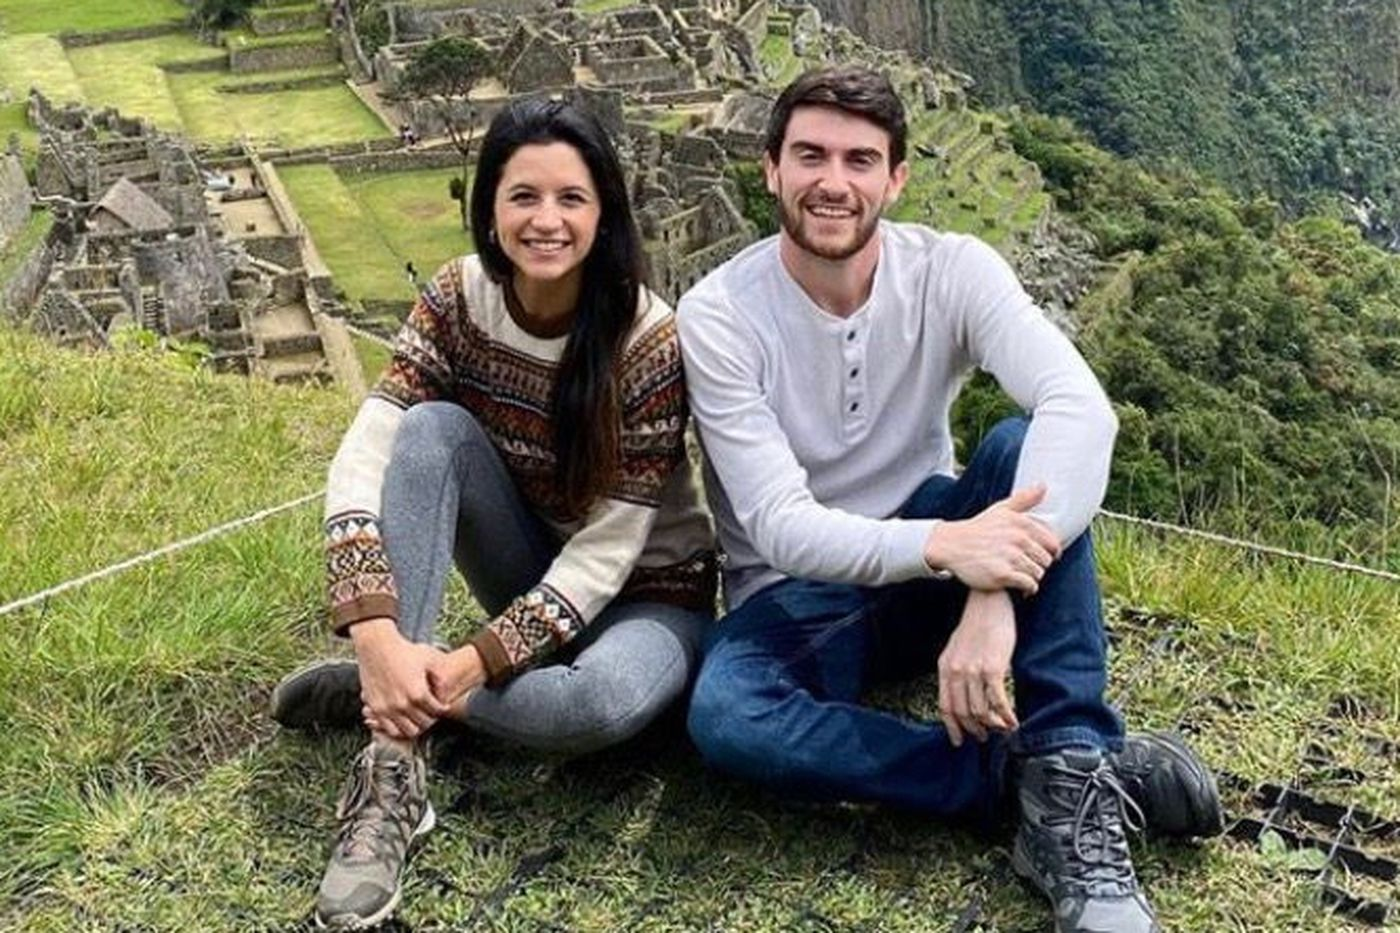 Denise Higney and Daniel Dougherty, both of Philadelphia, are among hundreds of Americans reportedly stuck in Peru after the country closed its borders to international travel amid the spread of the coronavirus.